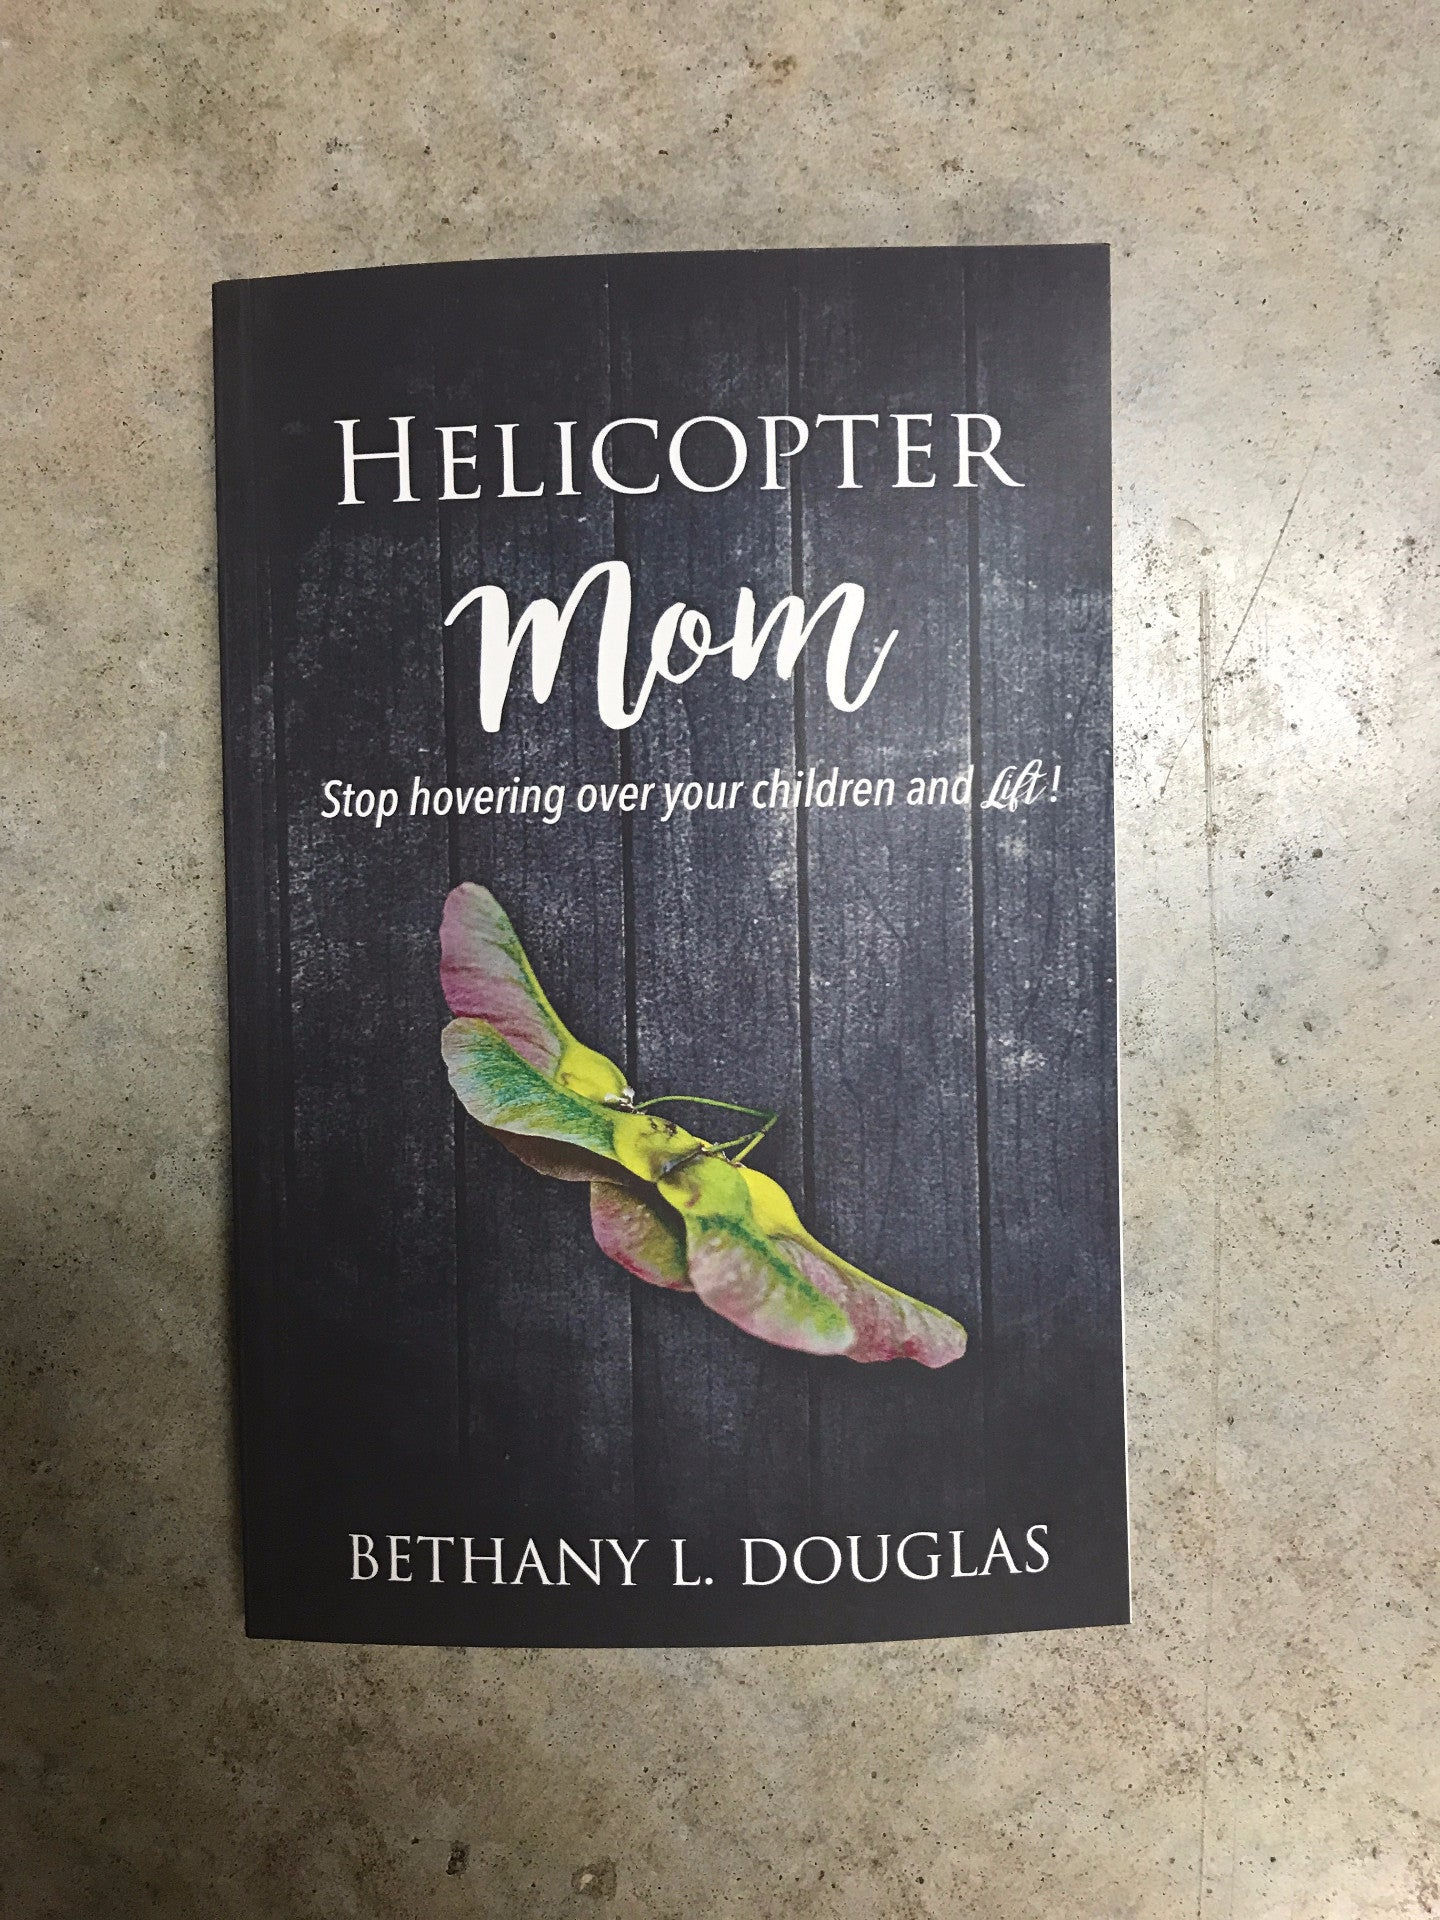 Helicopter Mom by Bethany Douglas